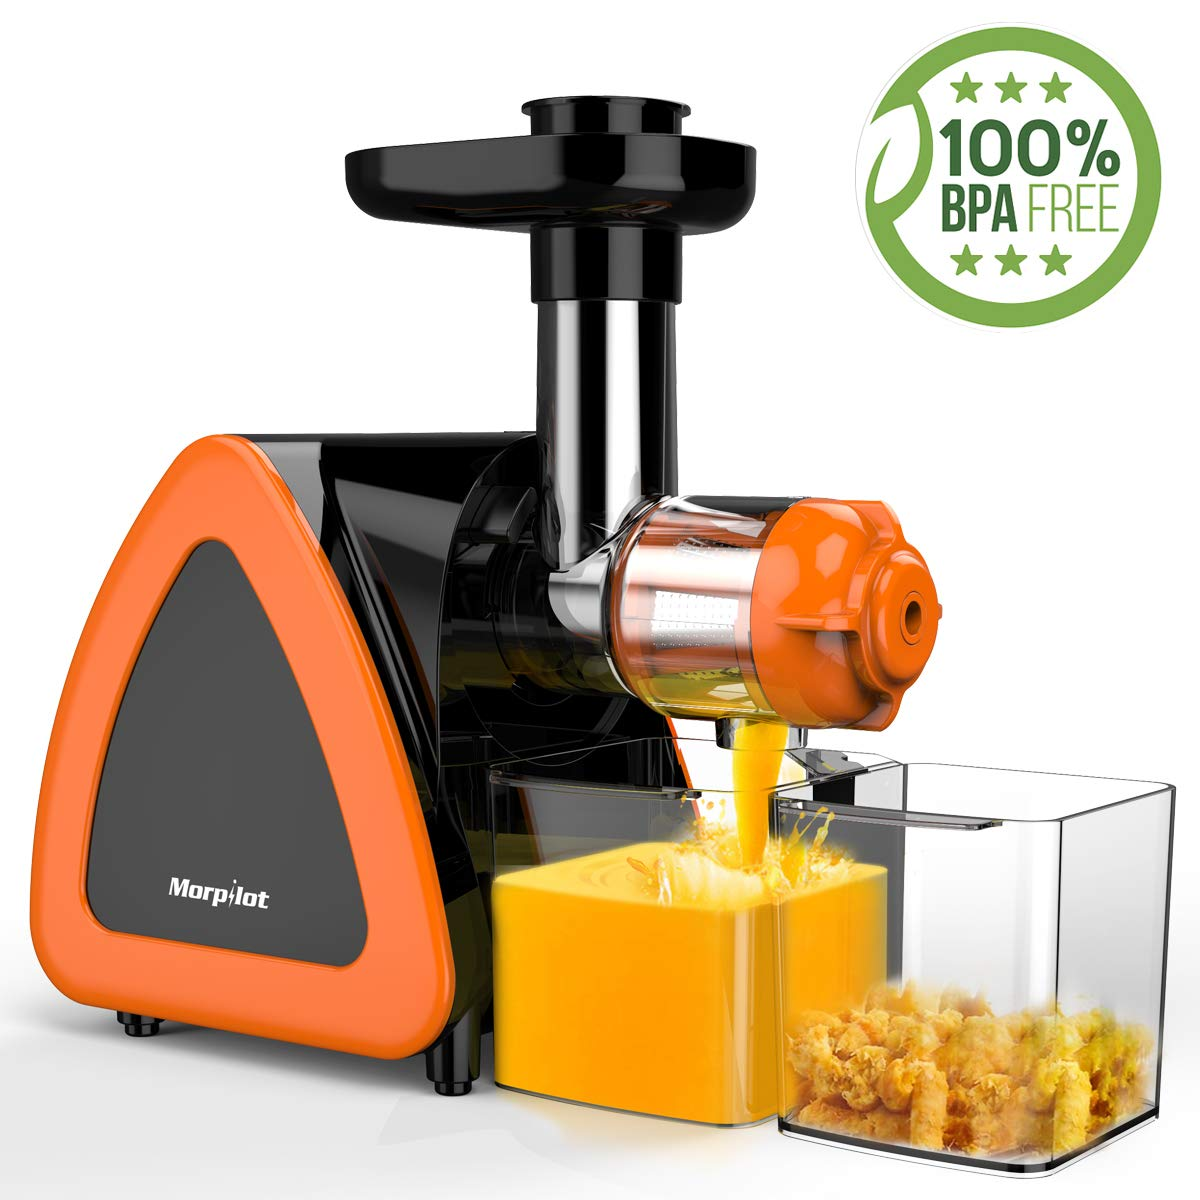 Great quality juicer